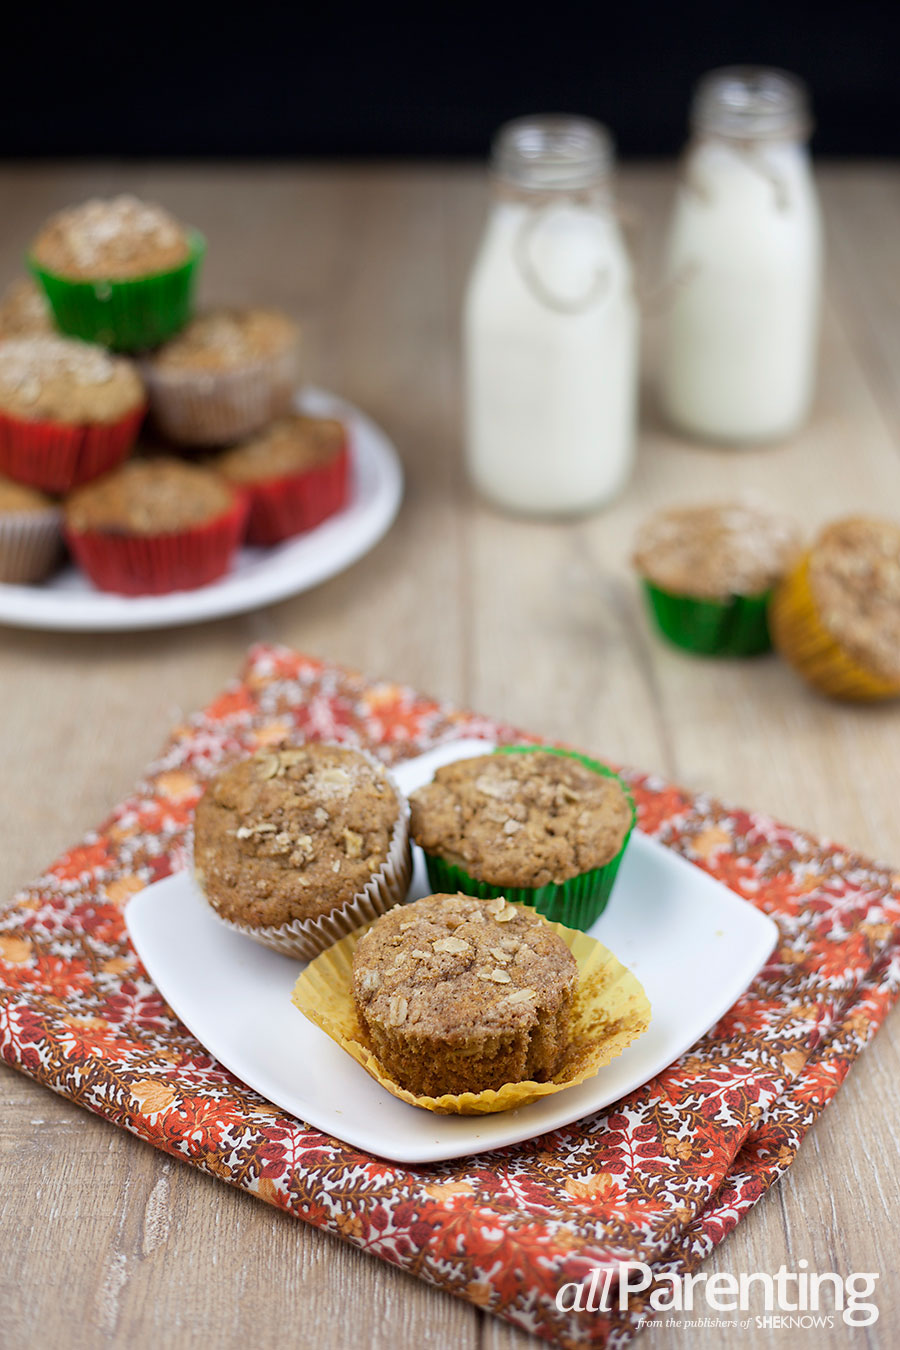 allParenting Whole wheat apple cinnamon muffins